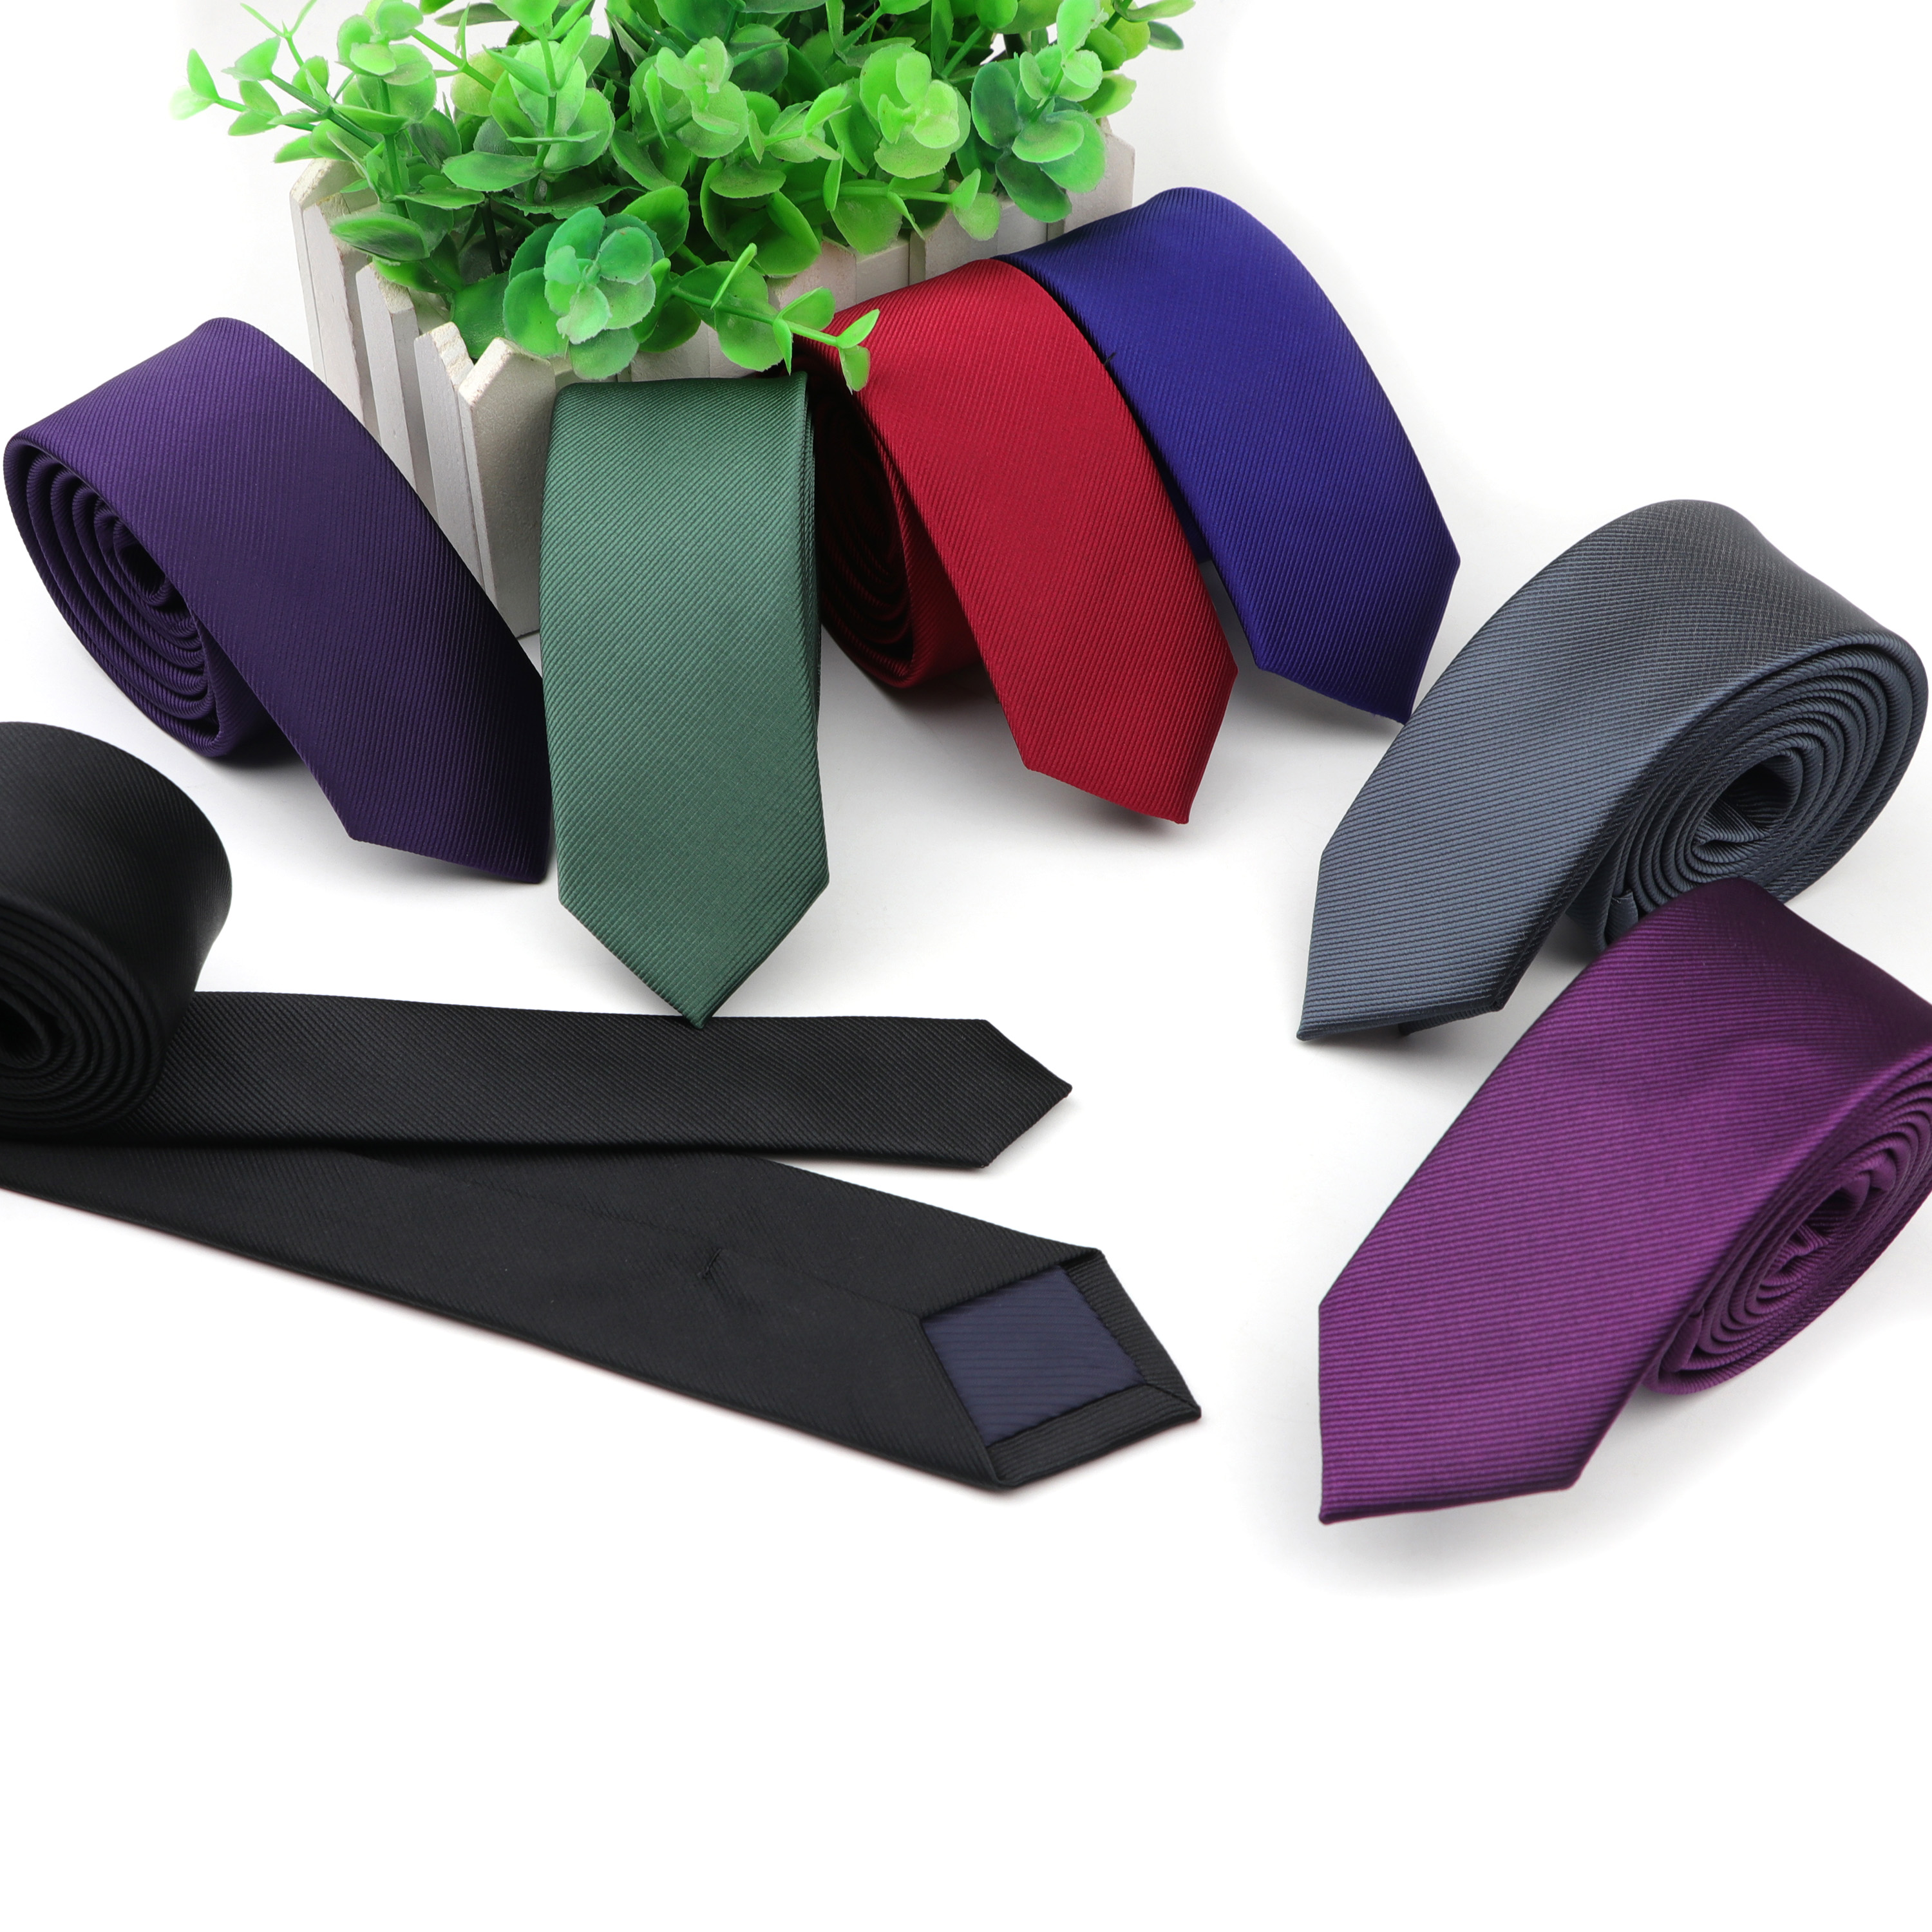 Men's Ties New Classic Solid Tie 5cm Skinny Jacquard Business Man Necktie Accessories Daily Wear Cravat Wedding Party Gift